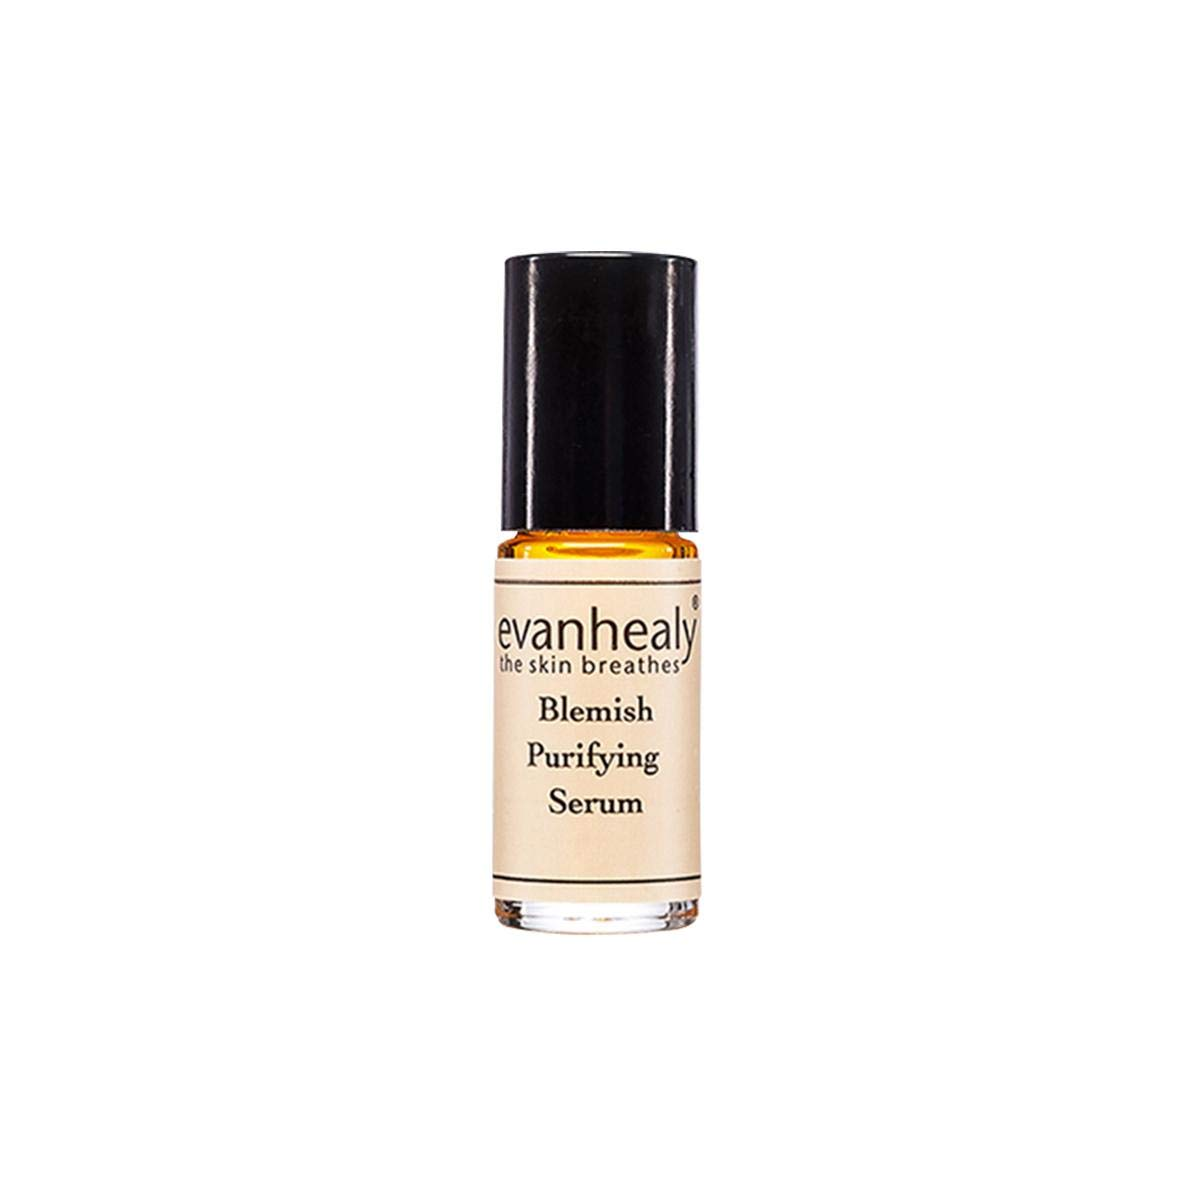 Blemish Purifying Serum Roll-On stick by evanhealy